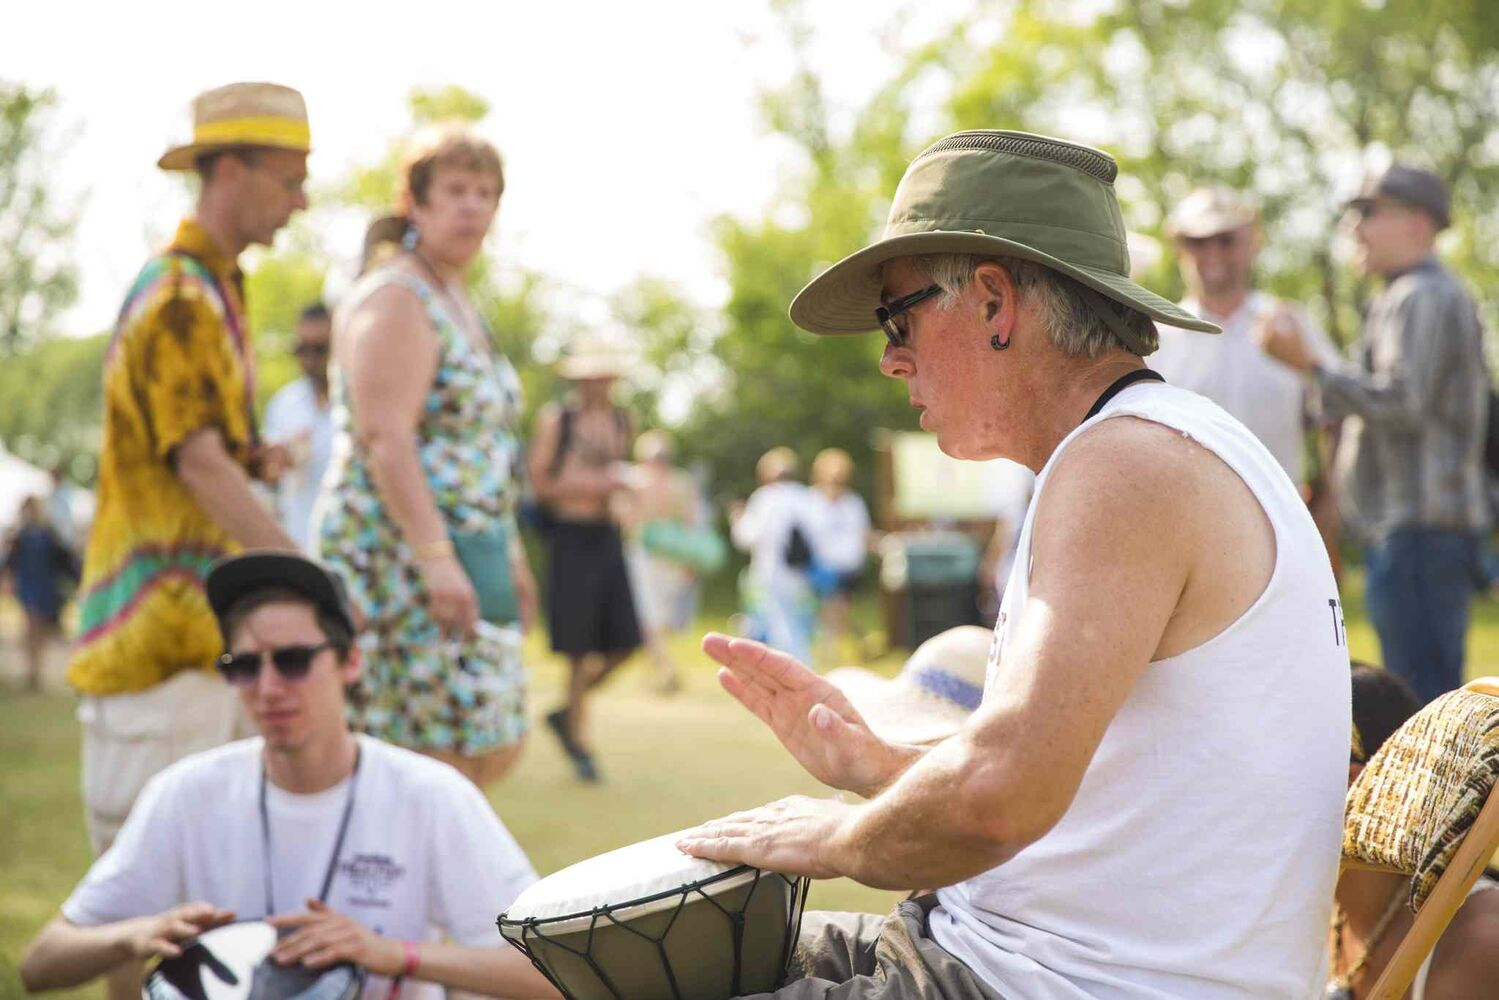 Paul Long leads a jam circle at the Winnipeg Folk Festival at Birds Hill Provincial Park on Saturday, July 11, 2015.   Mikaela MacKenzie / Winnipeg Free Press (Winnipeg Free Press)